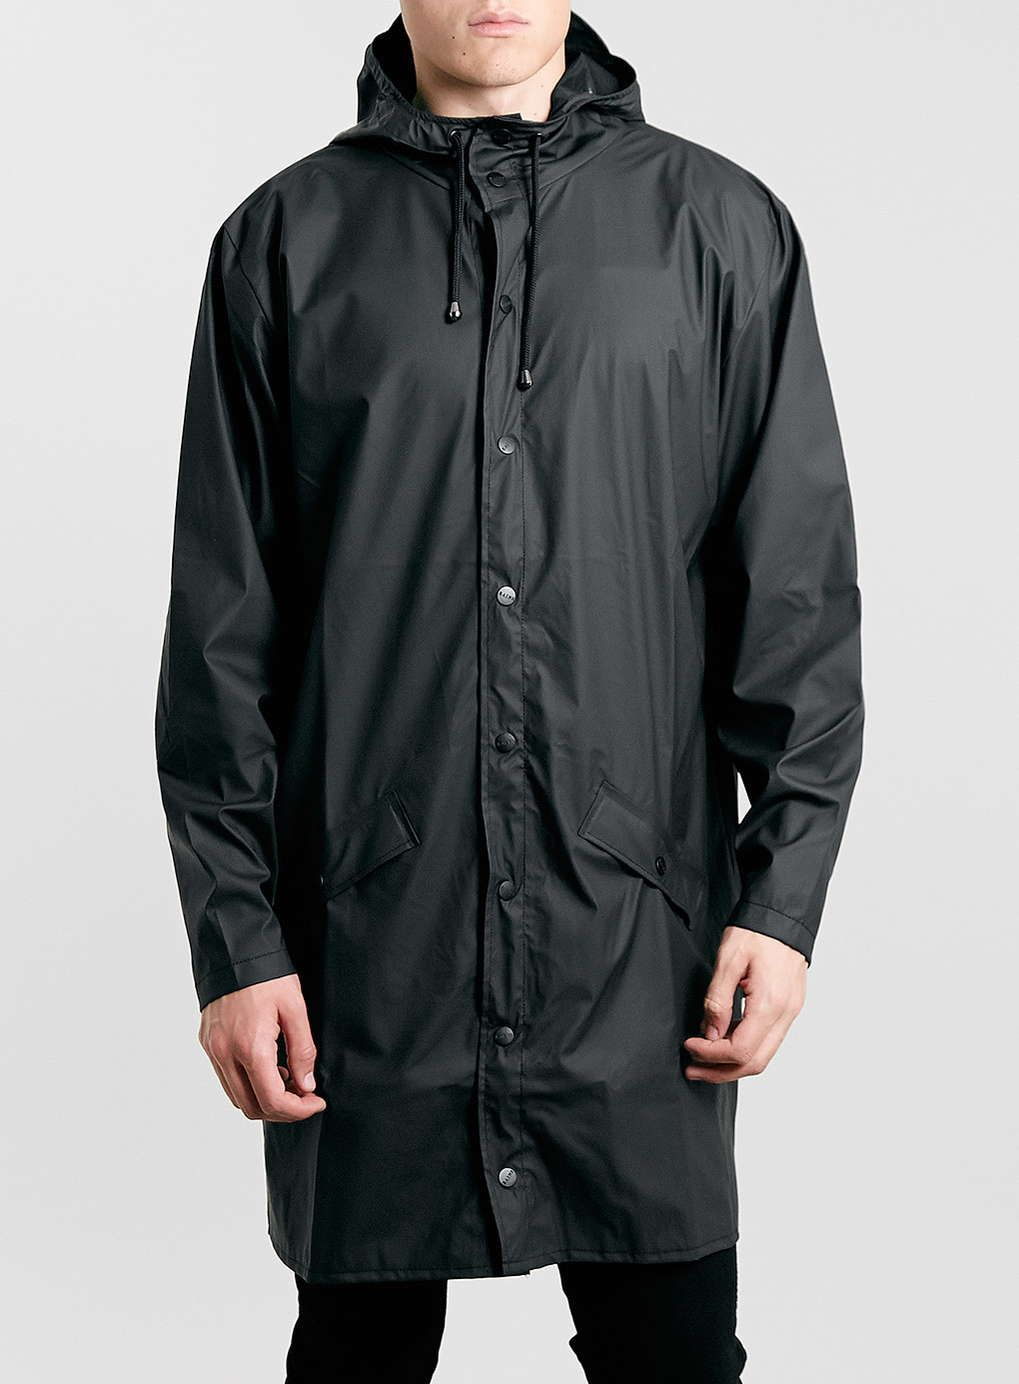 Rains Black Long Waterproof Jacket | Photos, Products and Rain